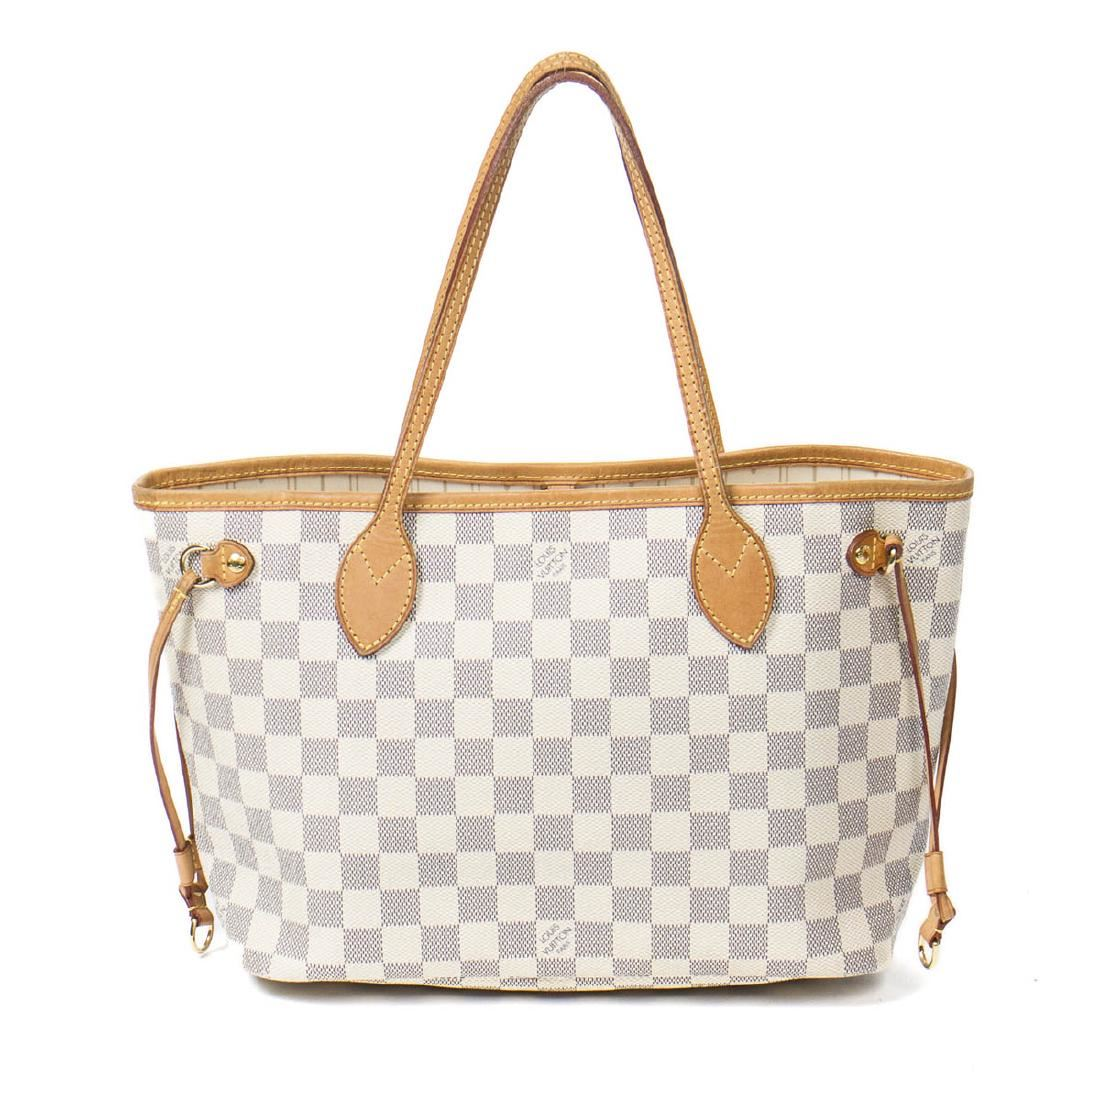 9acfeac354c7c Image 1   Louis Vuitton Neverfull PM in Ivory Damier Azur ...